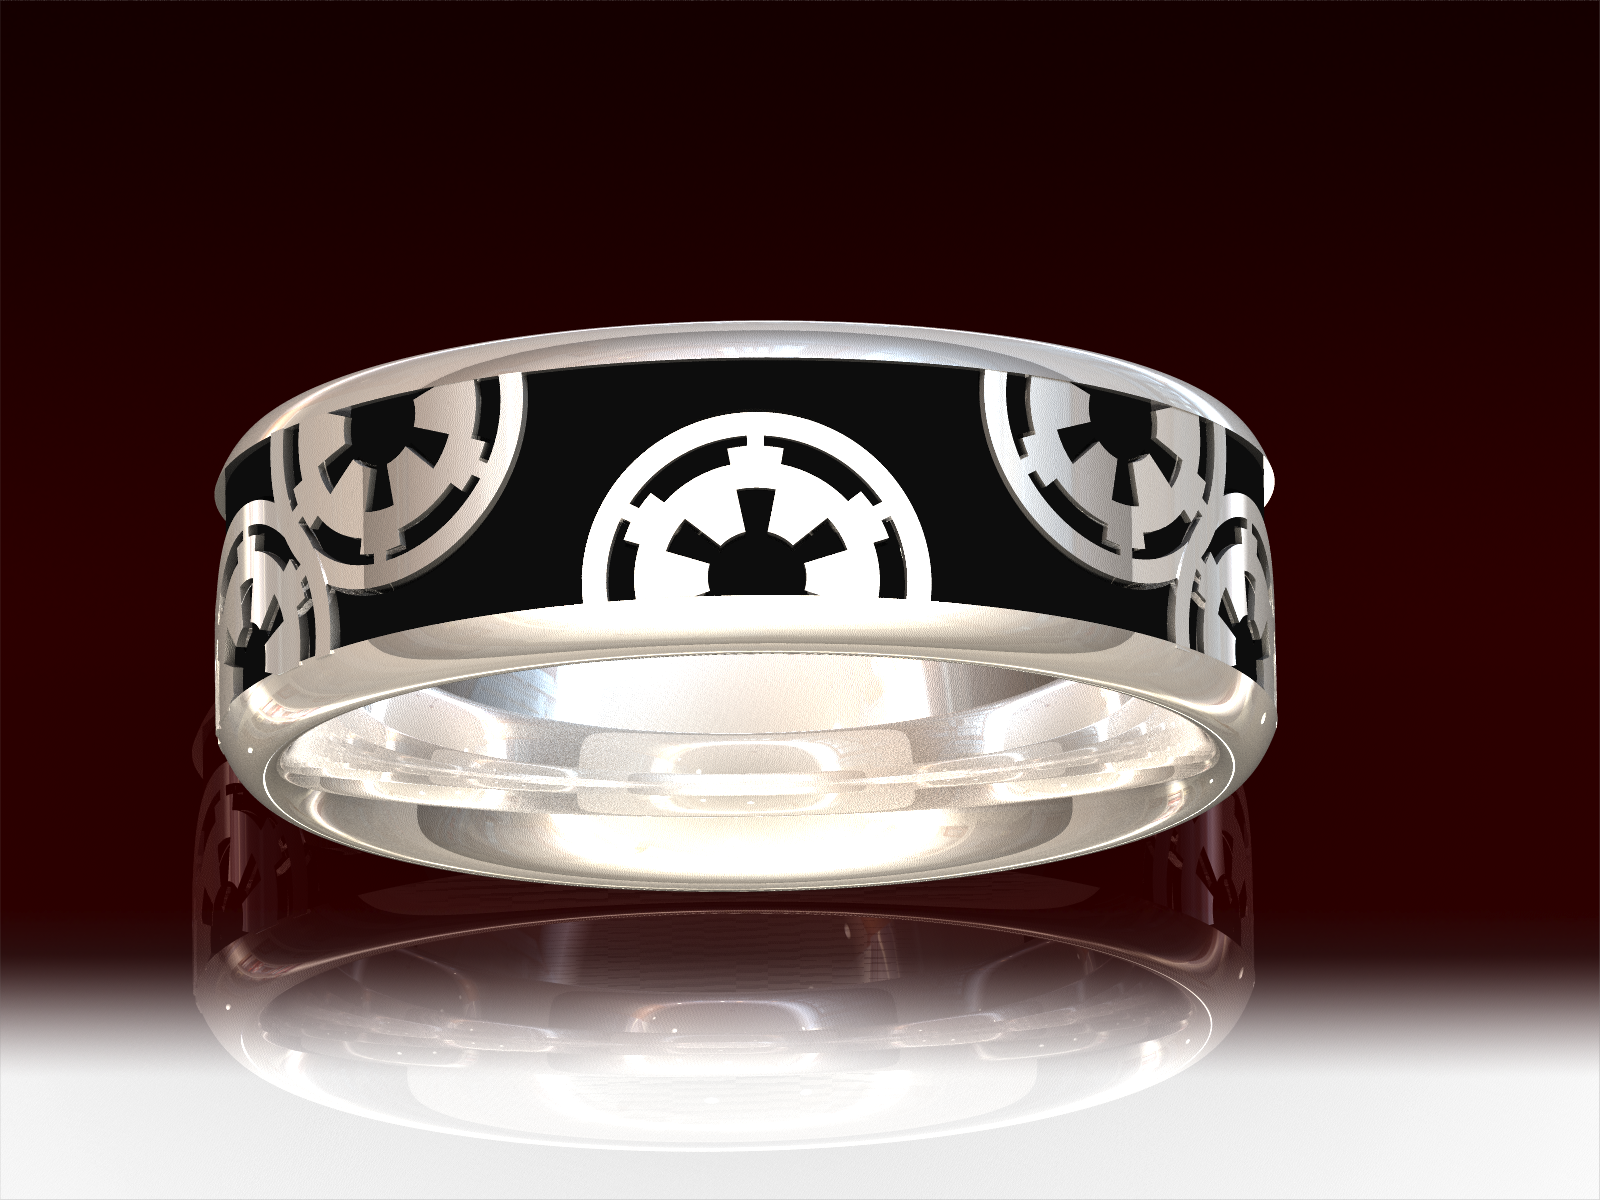 star wars wedding rings